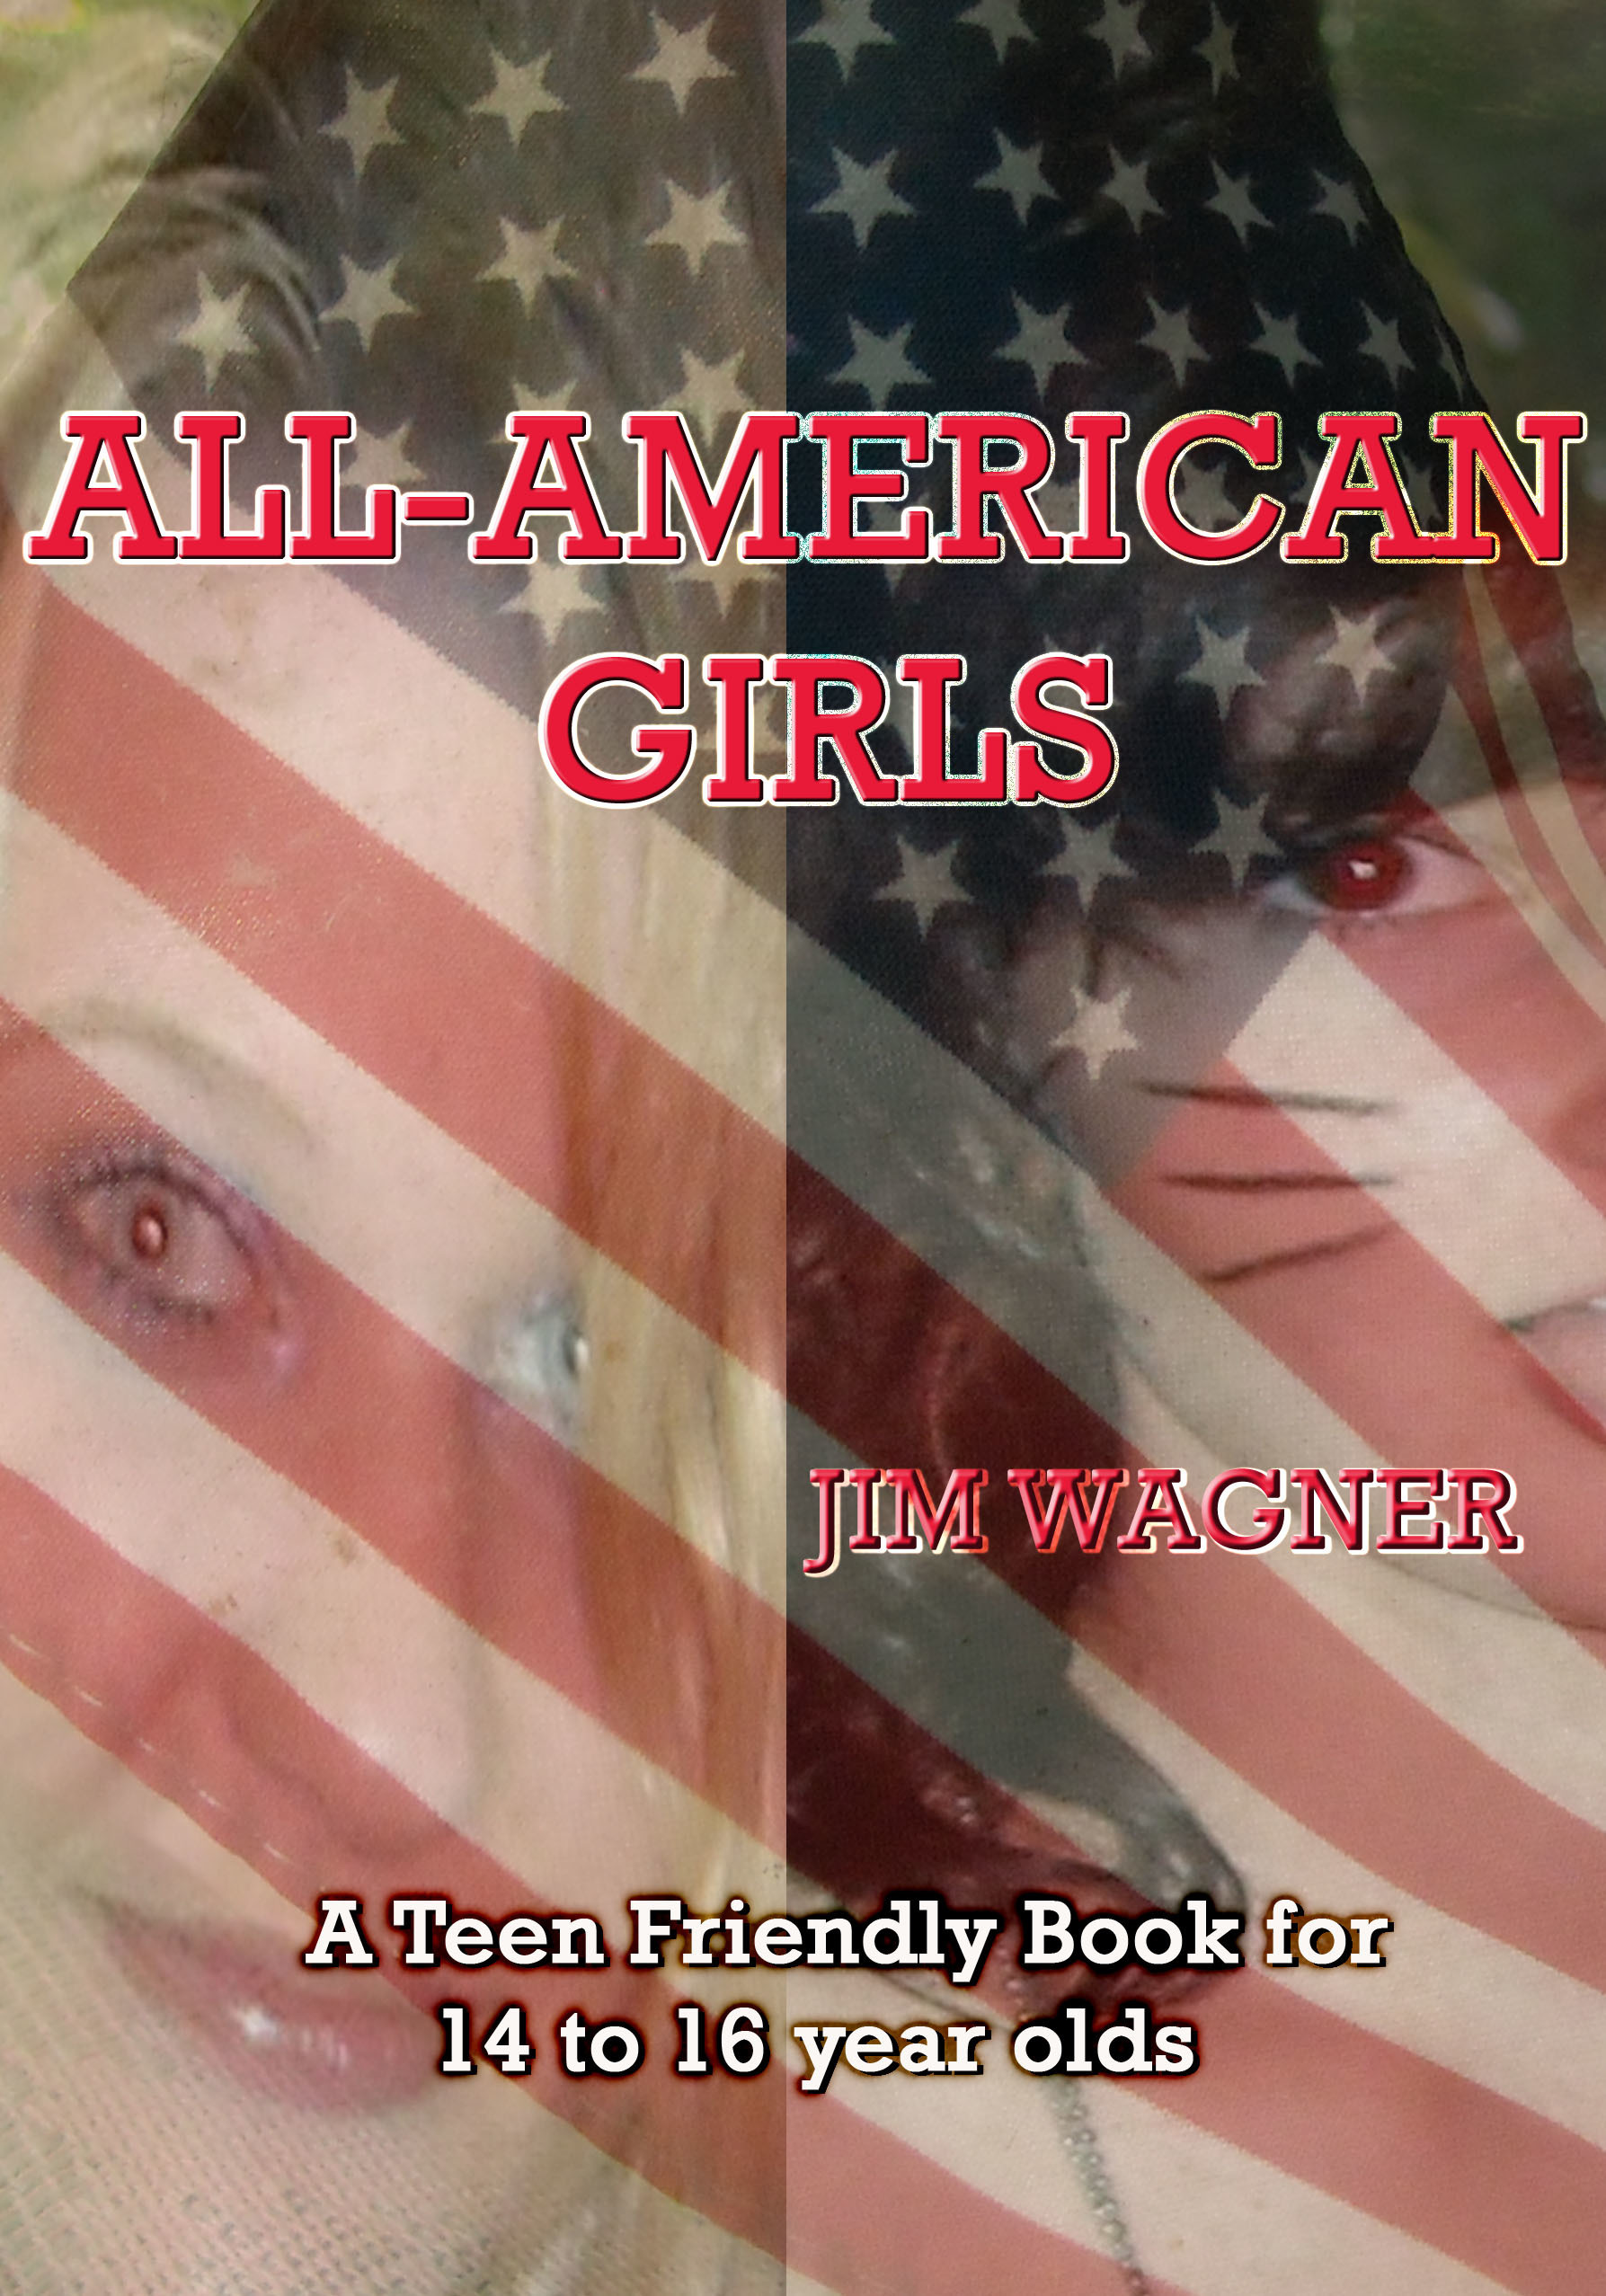 All American Girls Jim Wagner